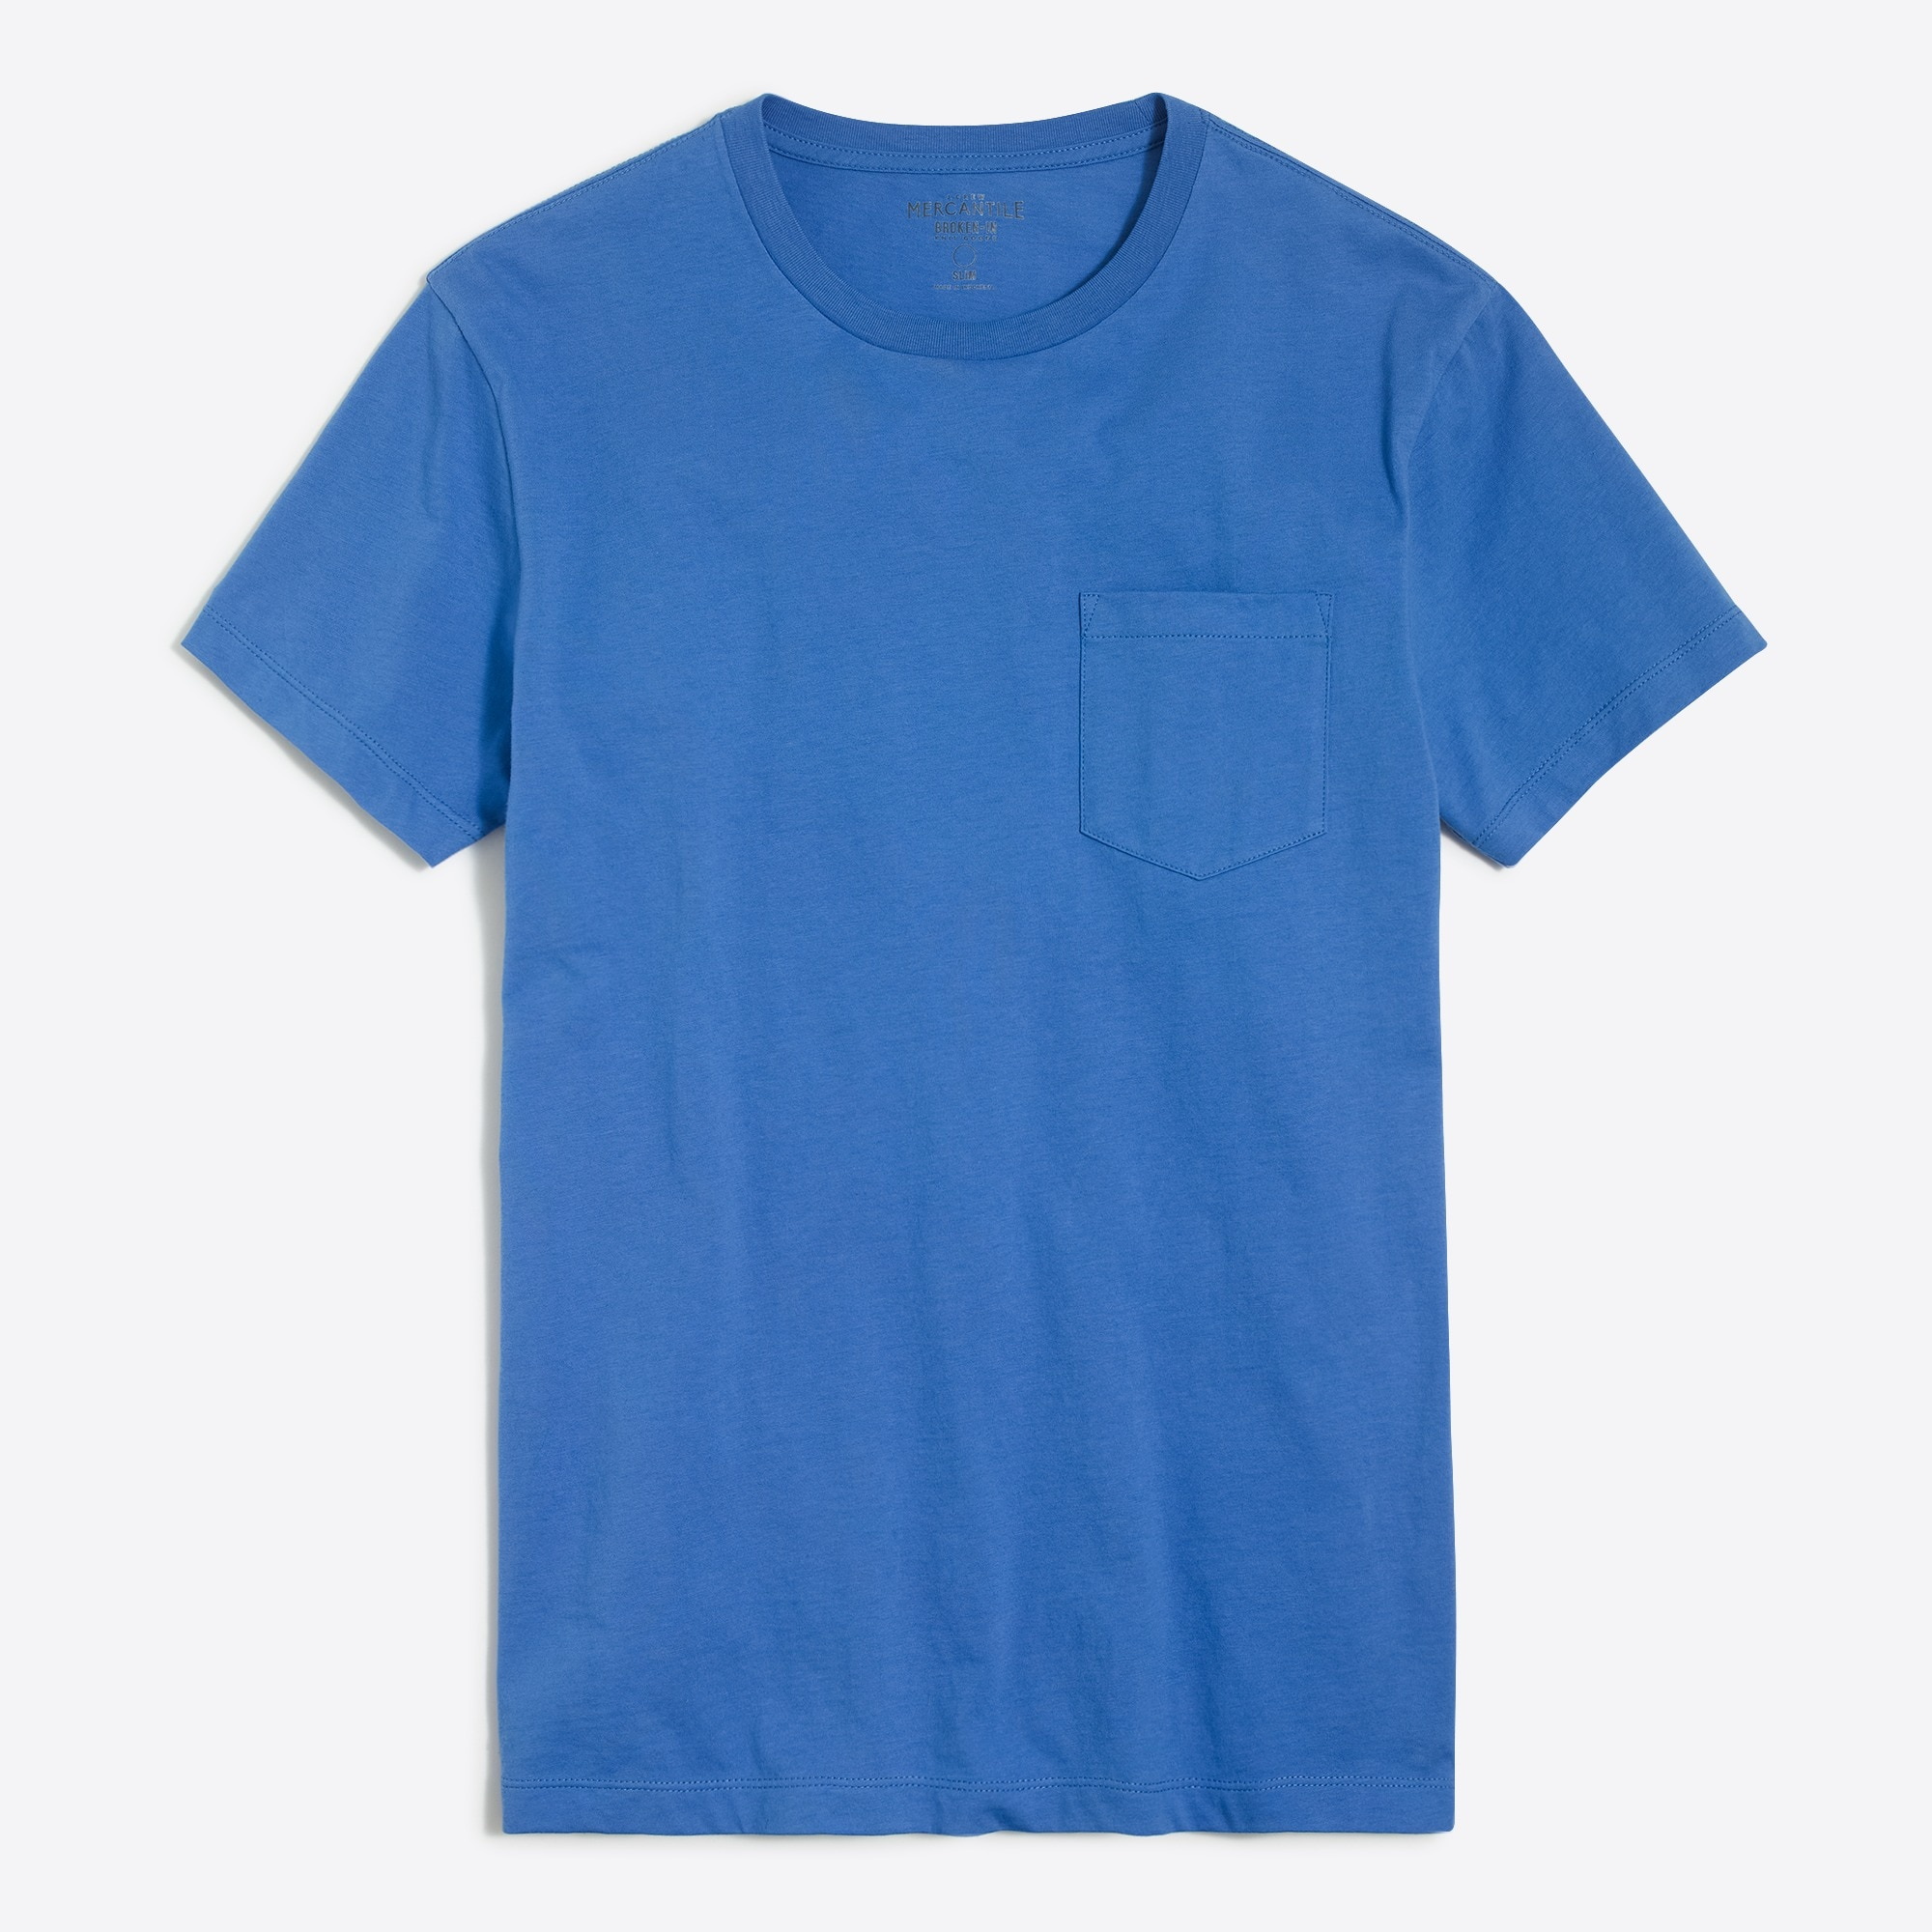 Image 2 for J.Crew Mercantile slim Broken-in pocket T-shirt